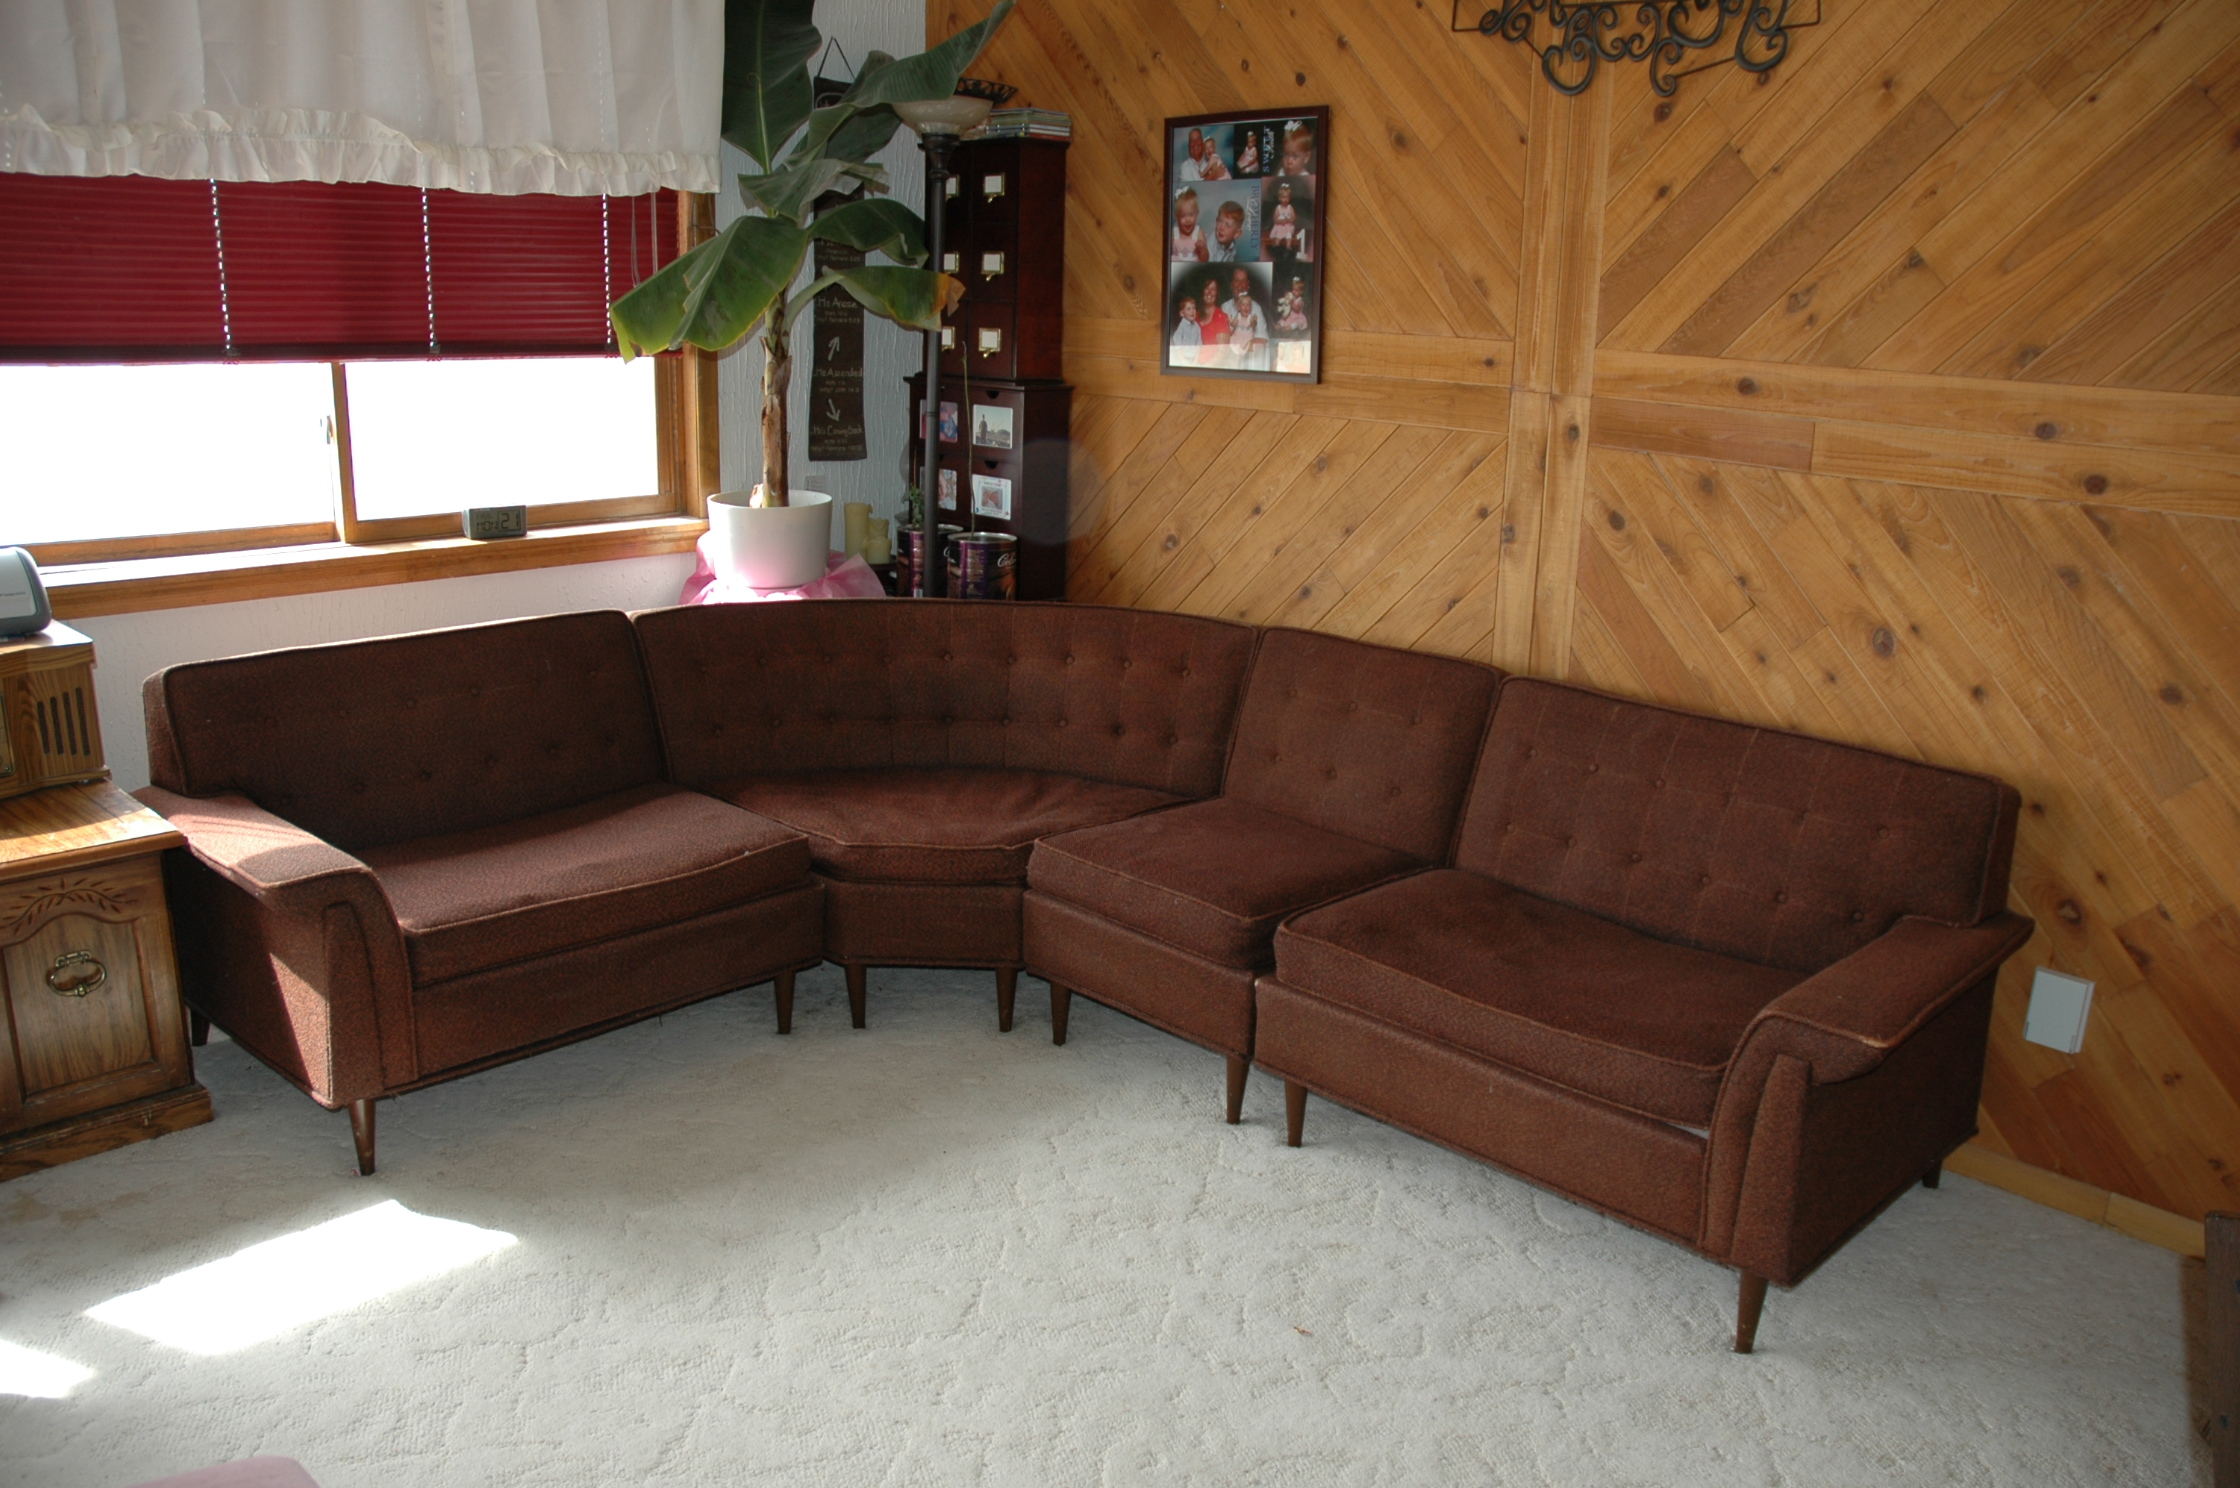 kroehler furniture galaxy designs mid centry 4 piece sectional - Kroehler Furniture